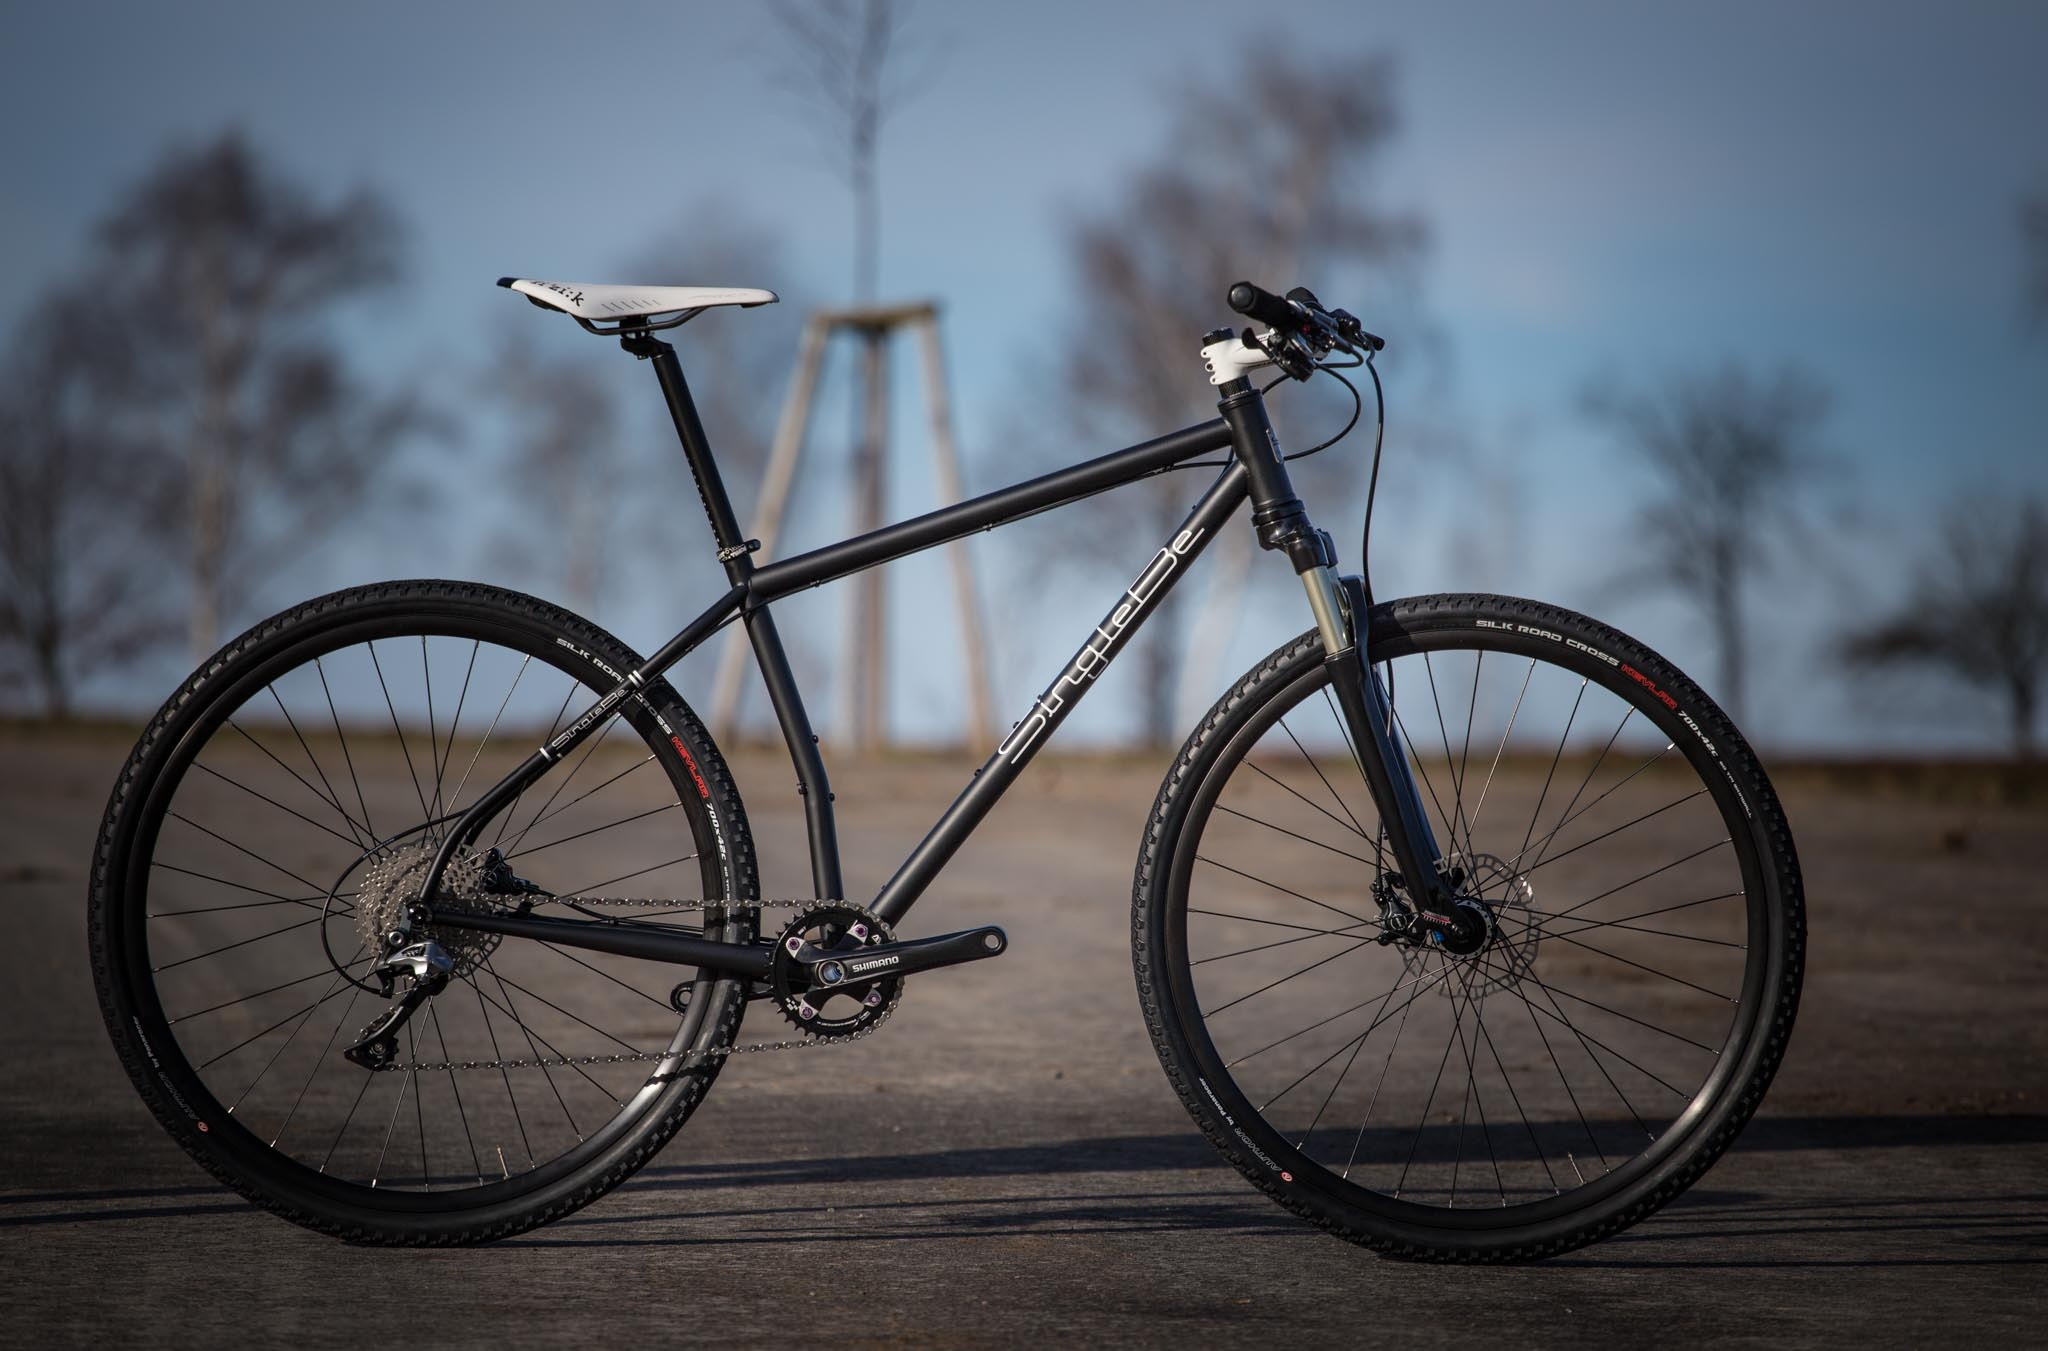 singlebe_long_distance_cross_700c_steel_bike_01